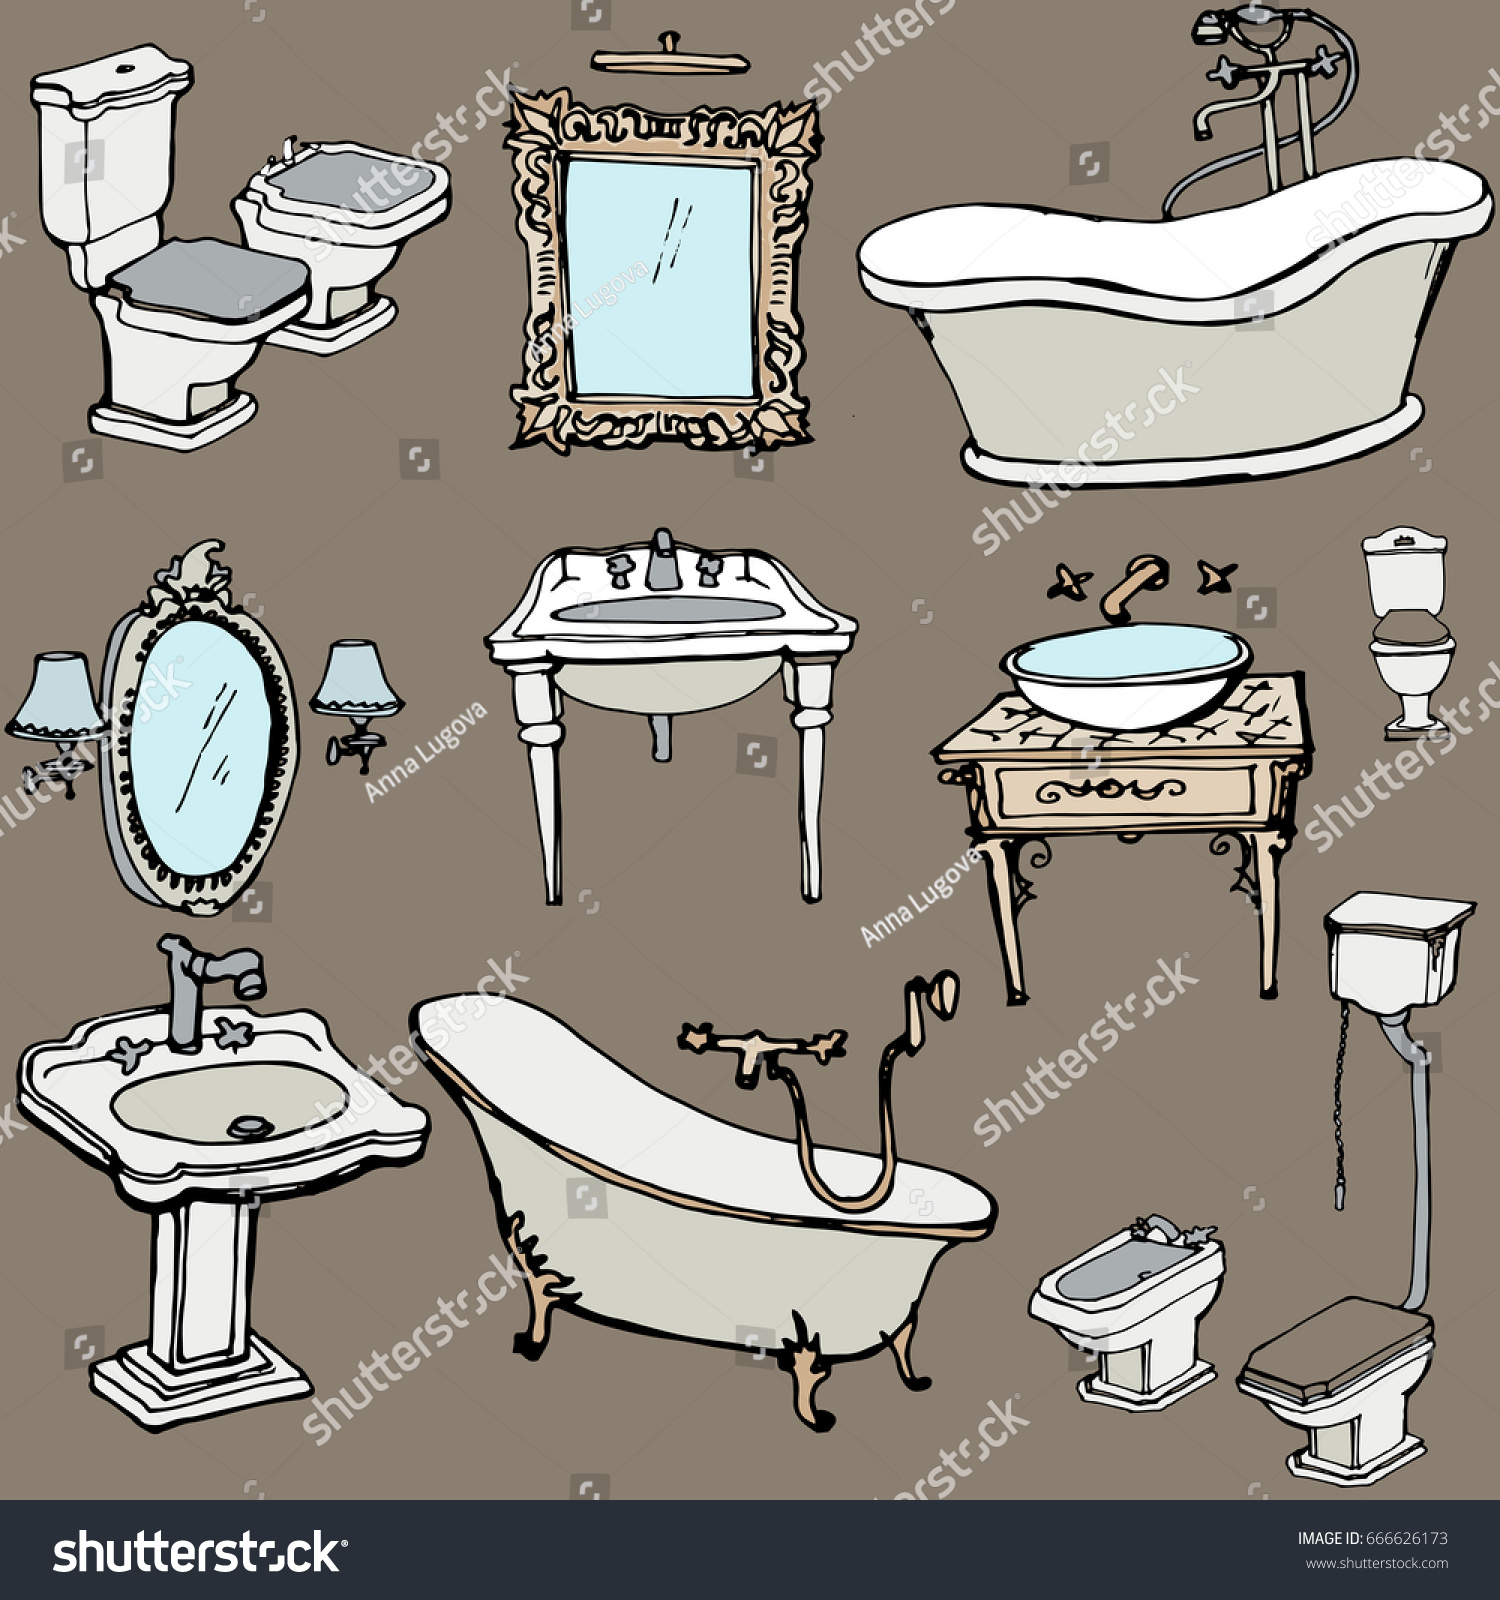 Sketch Bathroom Classic Old Style Interior Stock Illustration